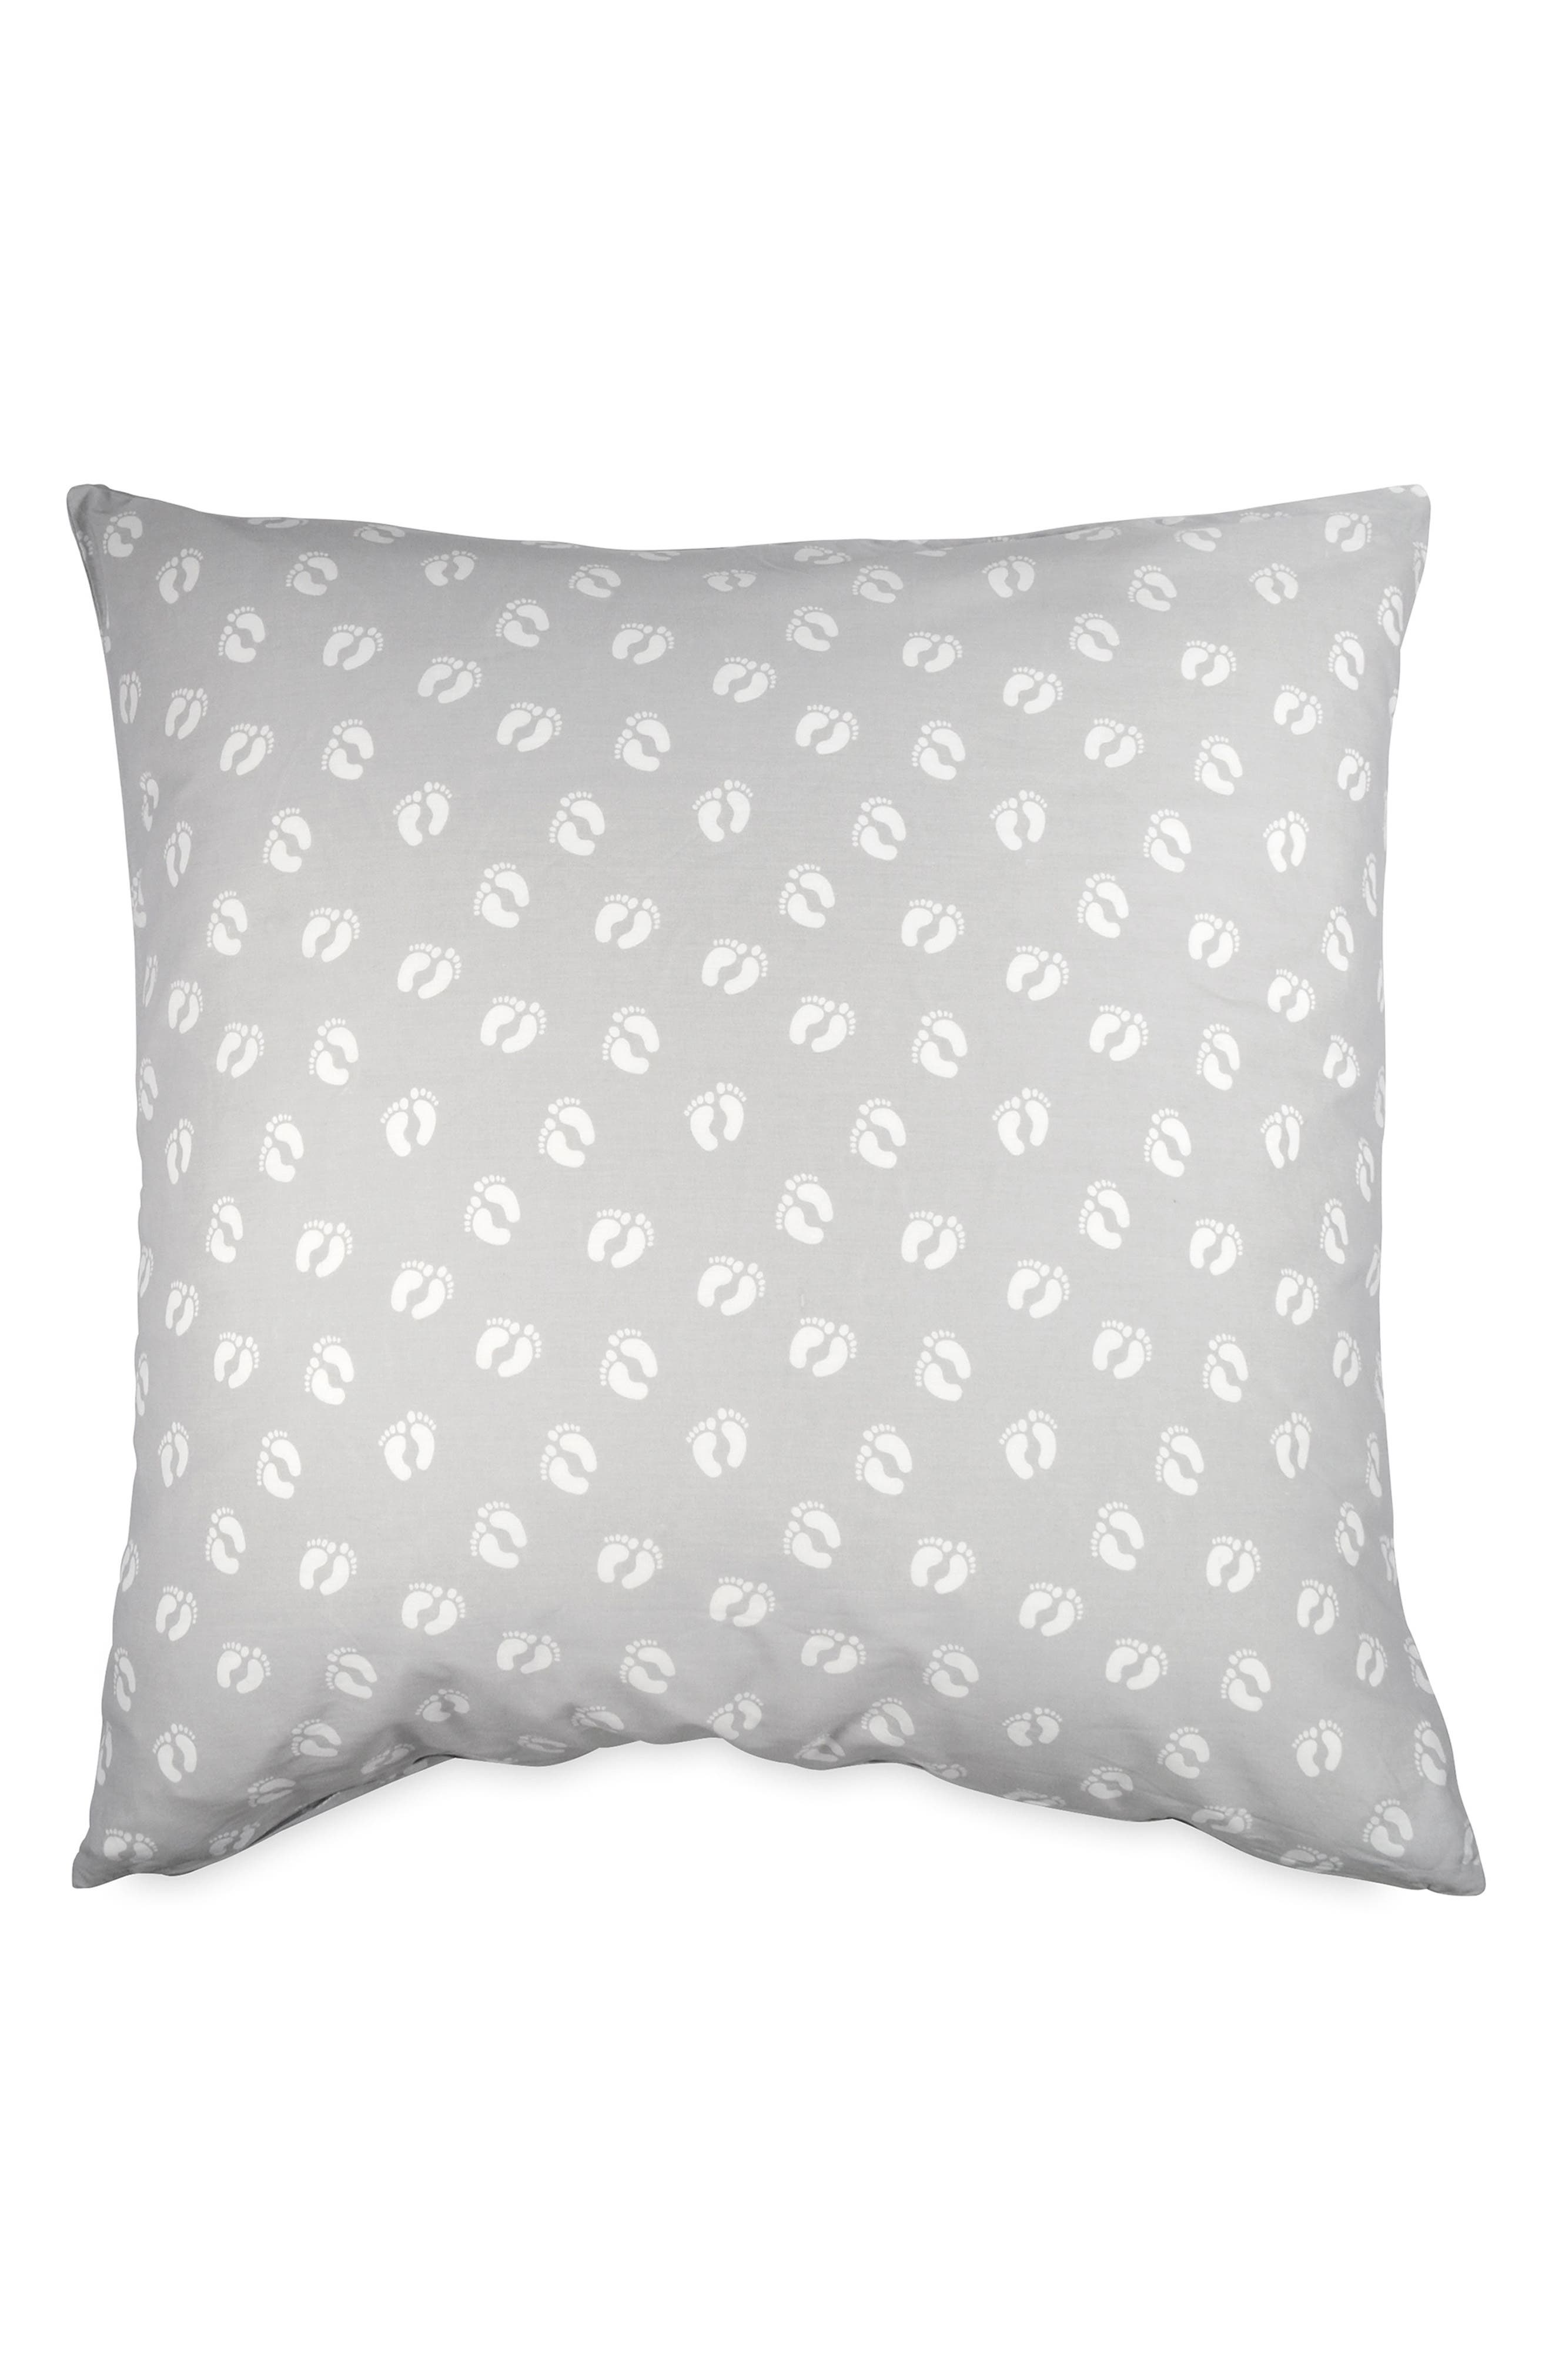 Throw Pillow,                             Main thumbnail 1, color,                             020